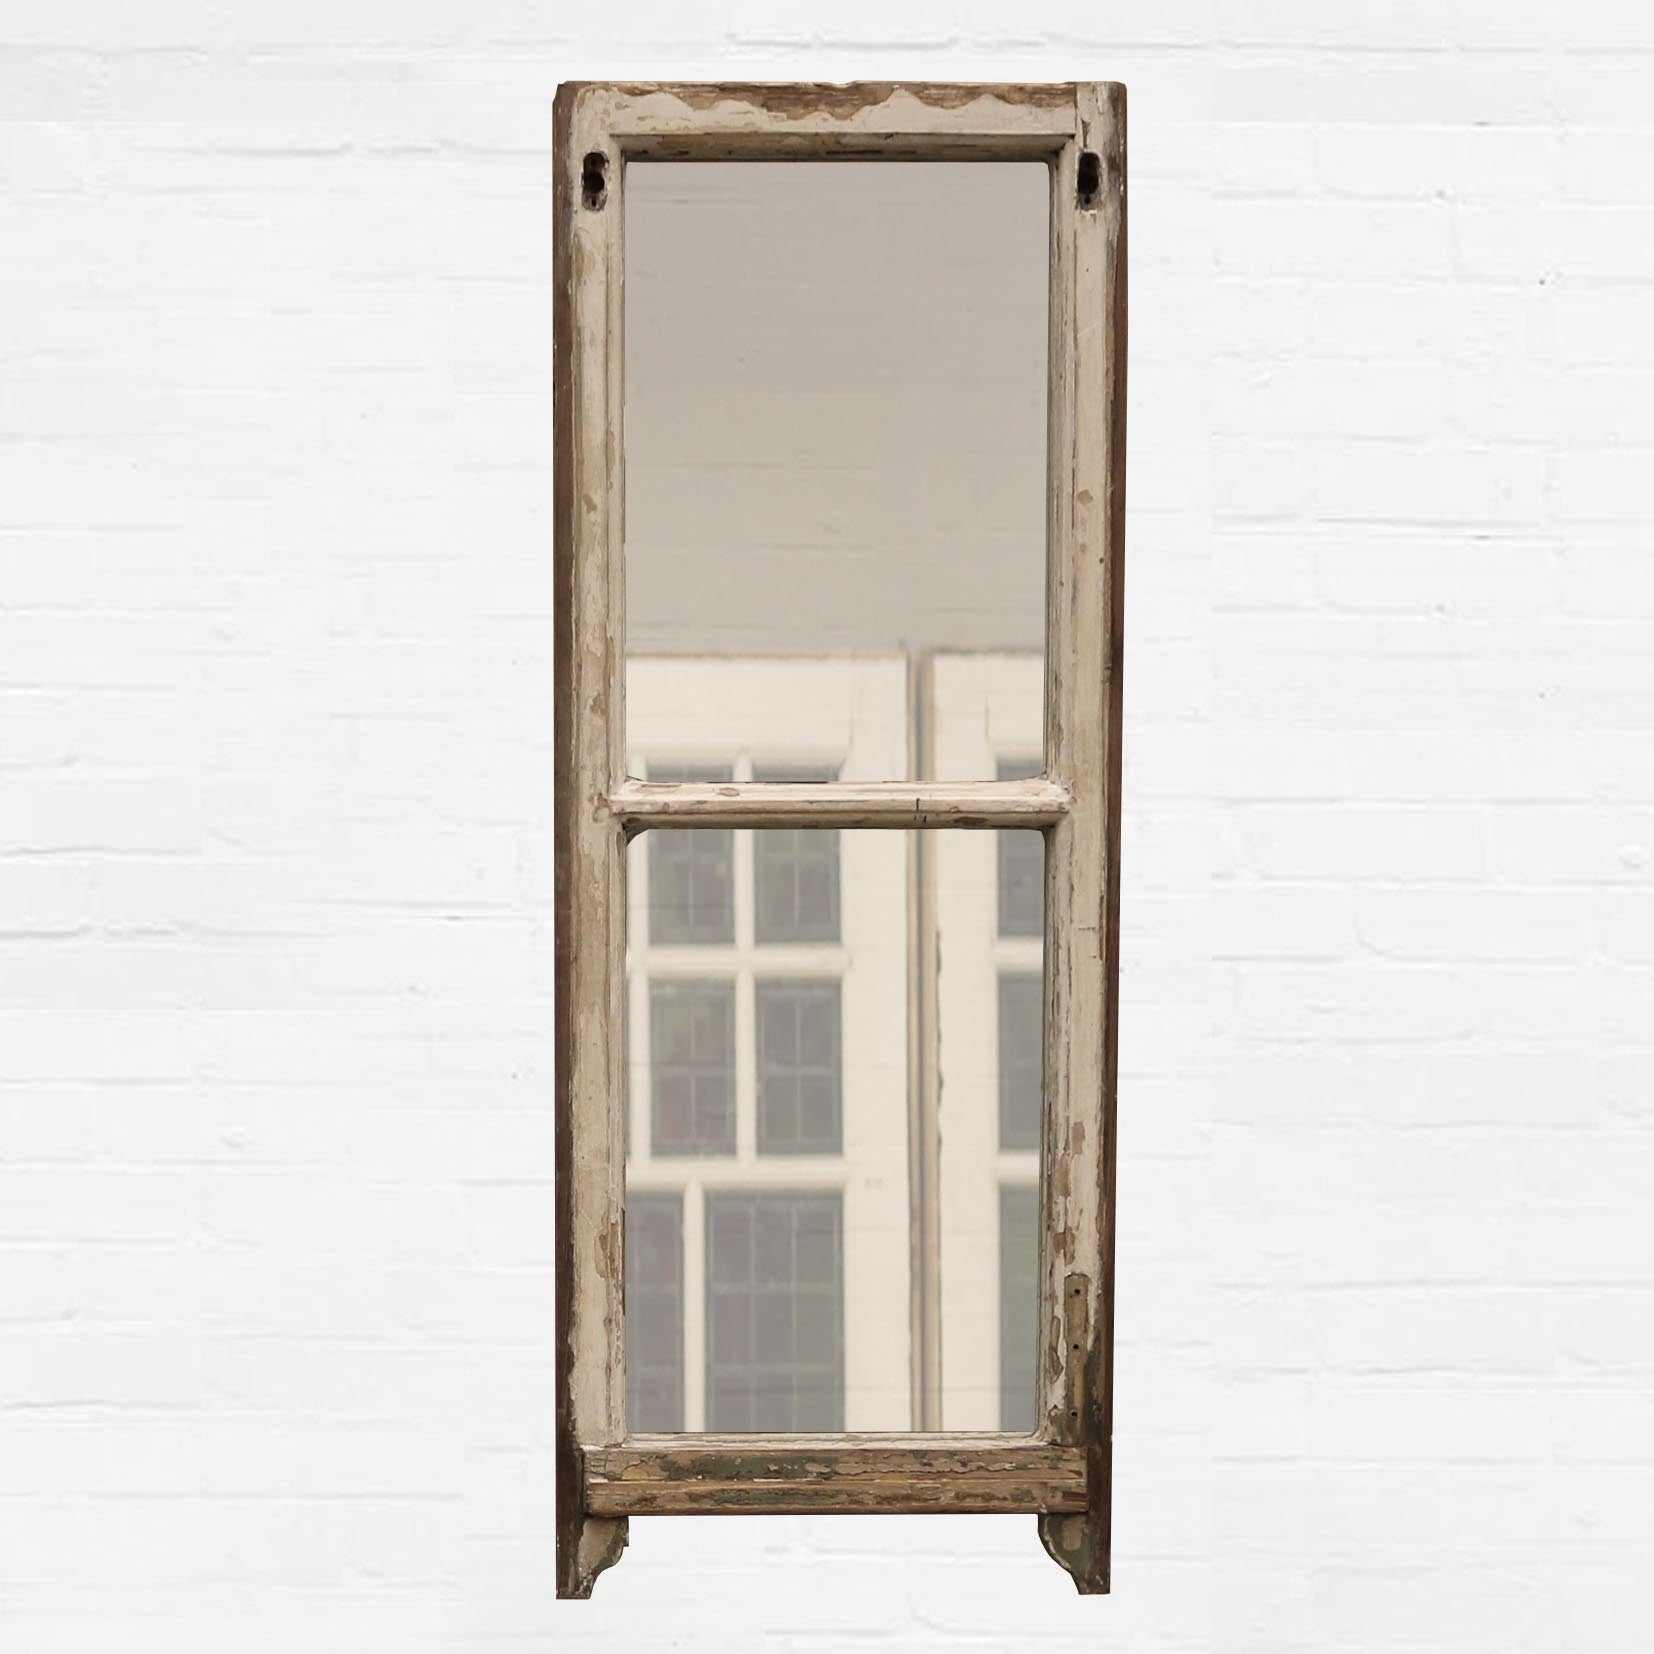 antique sash window mirror reclaim